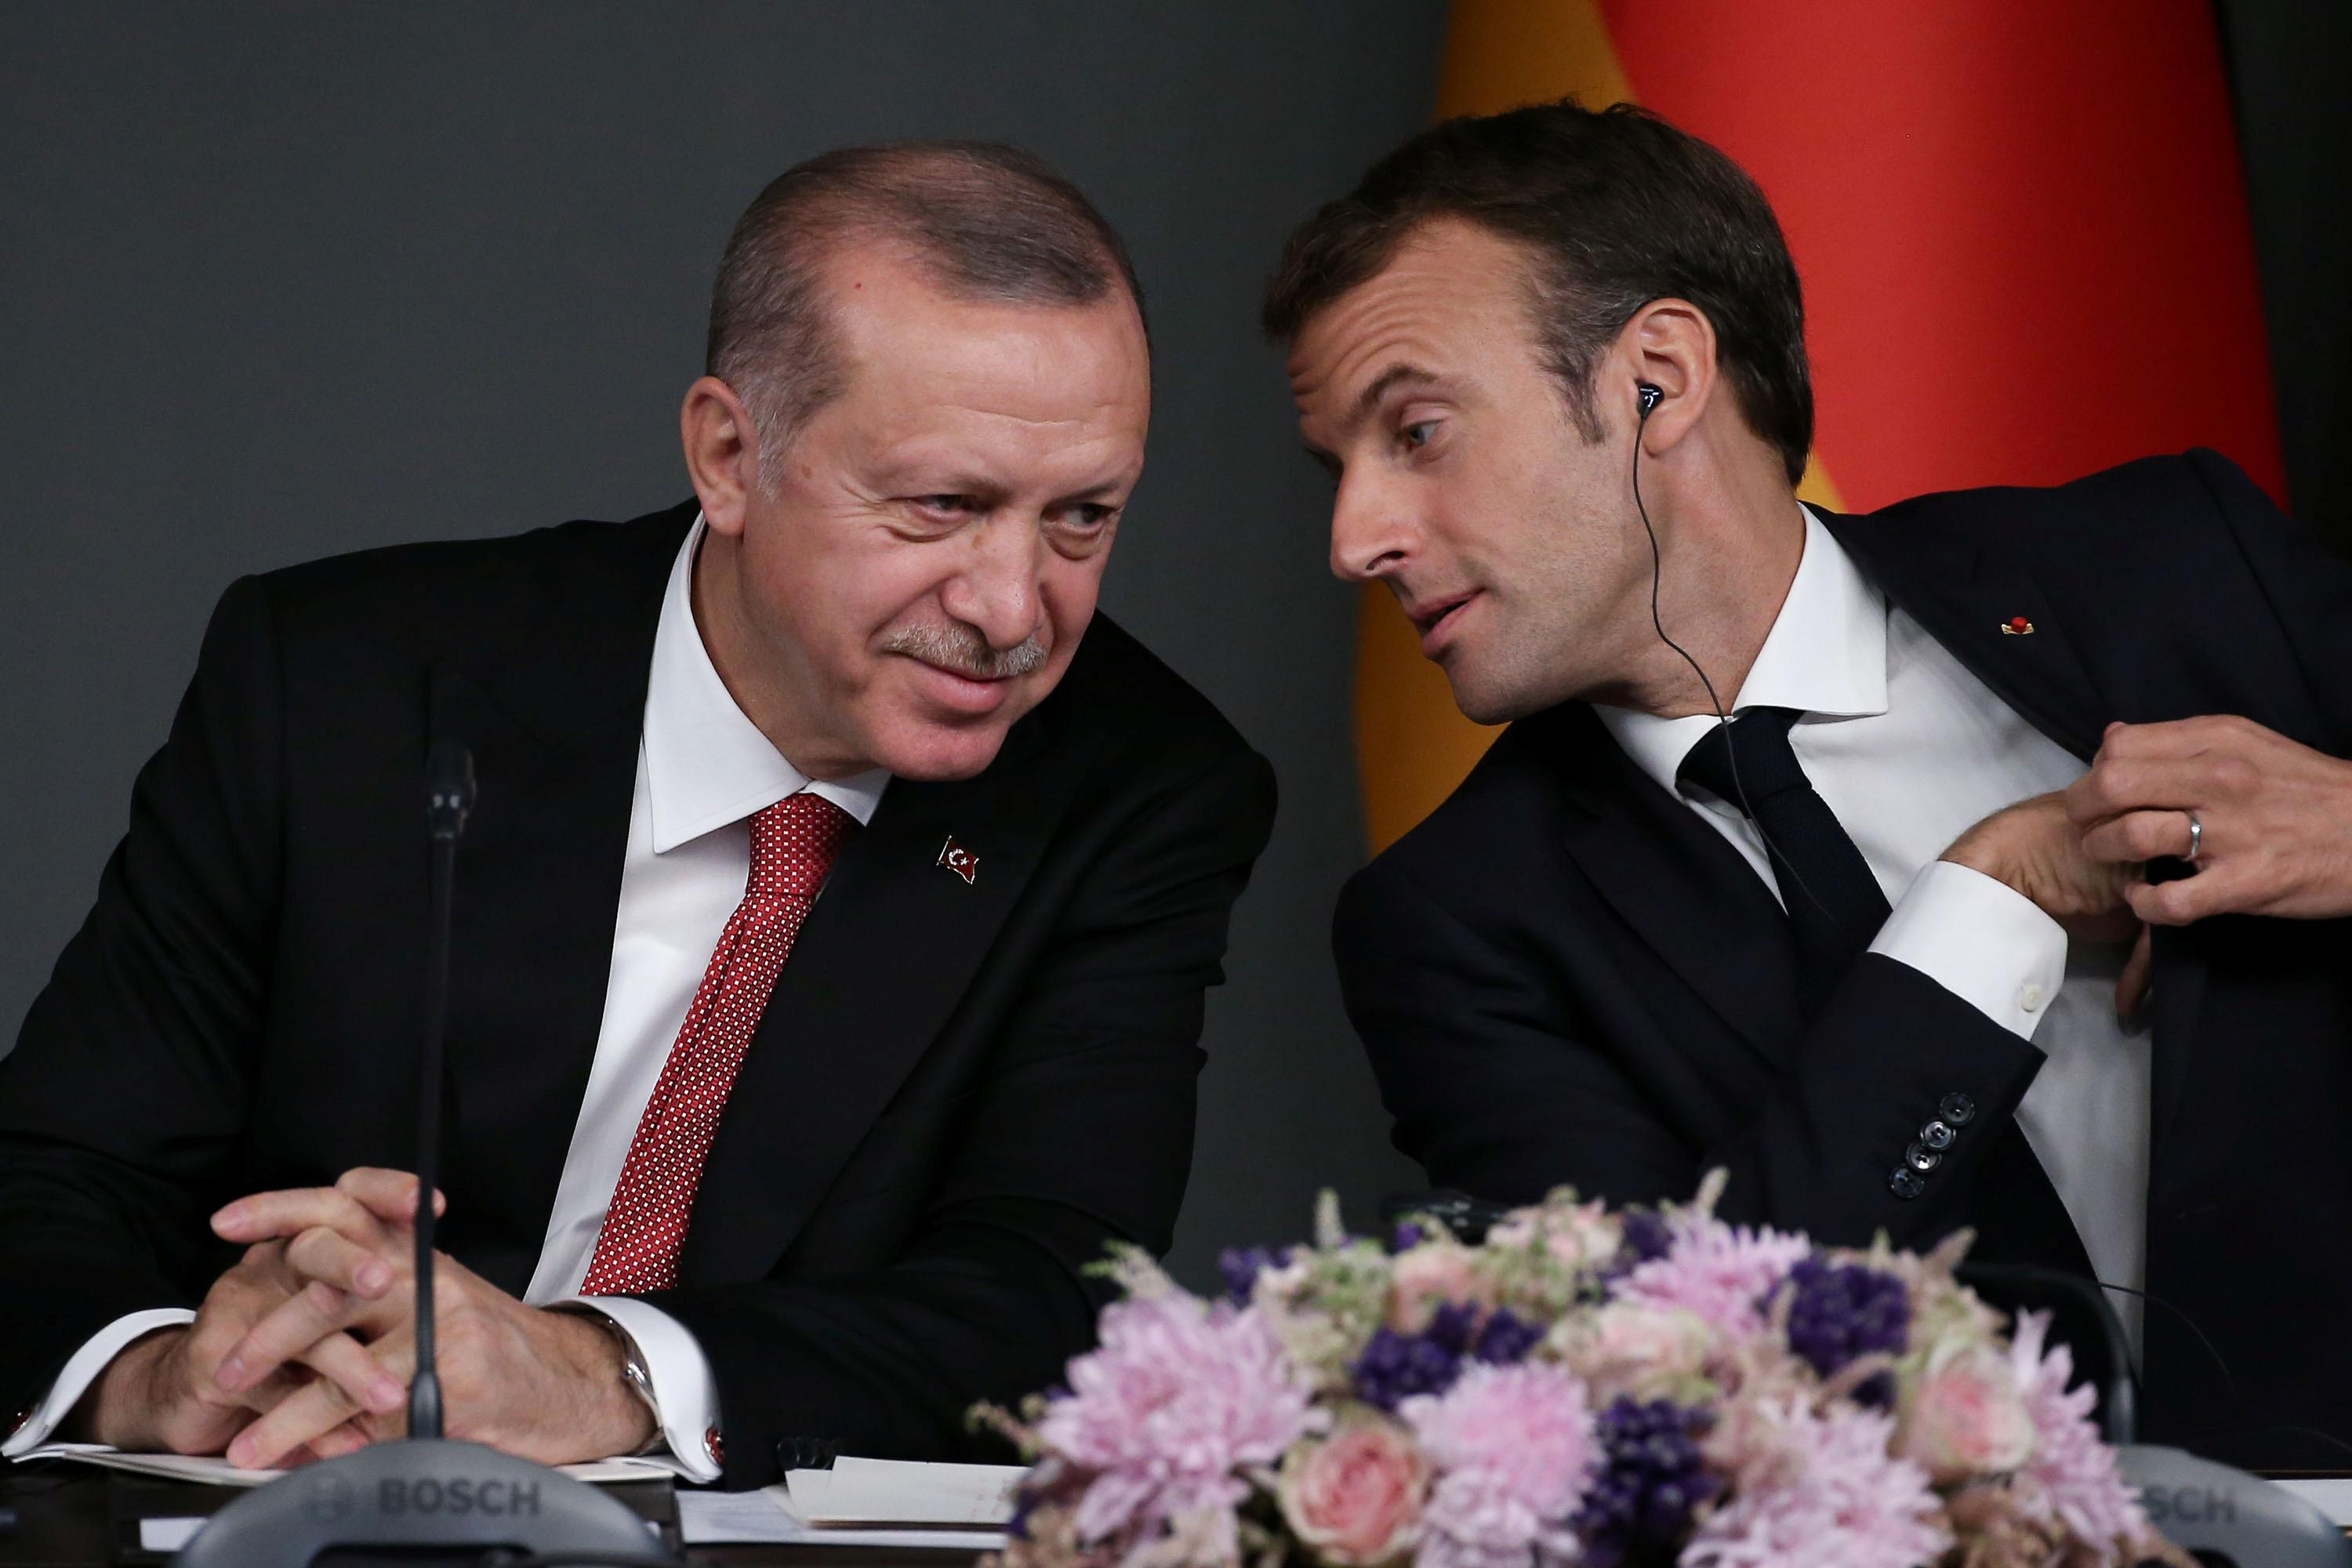 Are you 'brain-dead'? Turkey's Erdogan raps Macron before NATO summit